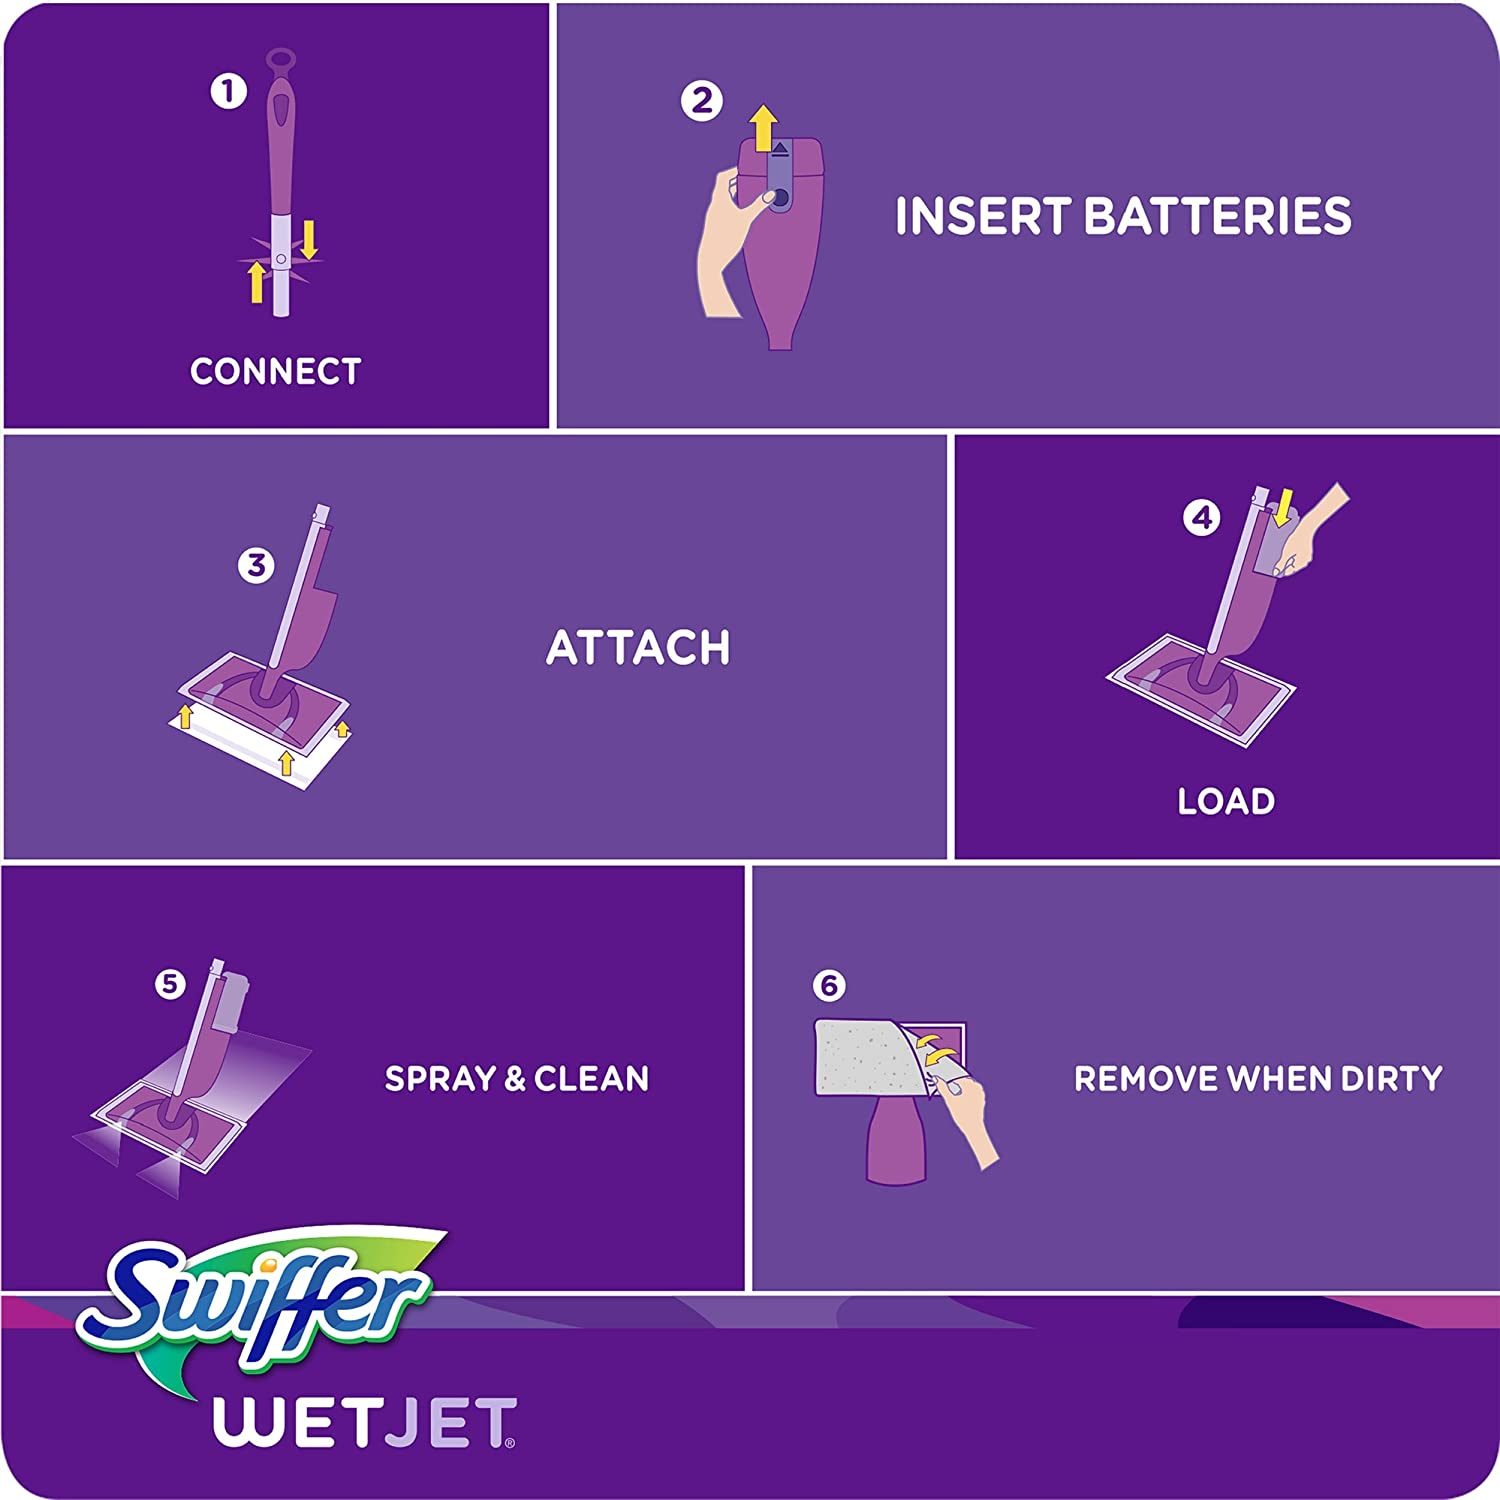 Swiffer wetjet wood floor cleaner - Amazon Com Swiffer Wetjet Hardwood Floor Cleaner Spray Mop Pad Refill Multi Surface 24 Count Packaging May Vary Prime Pantry